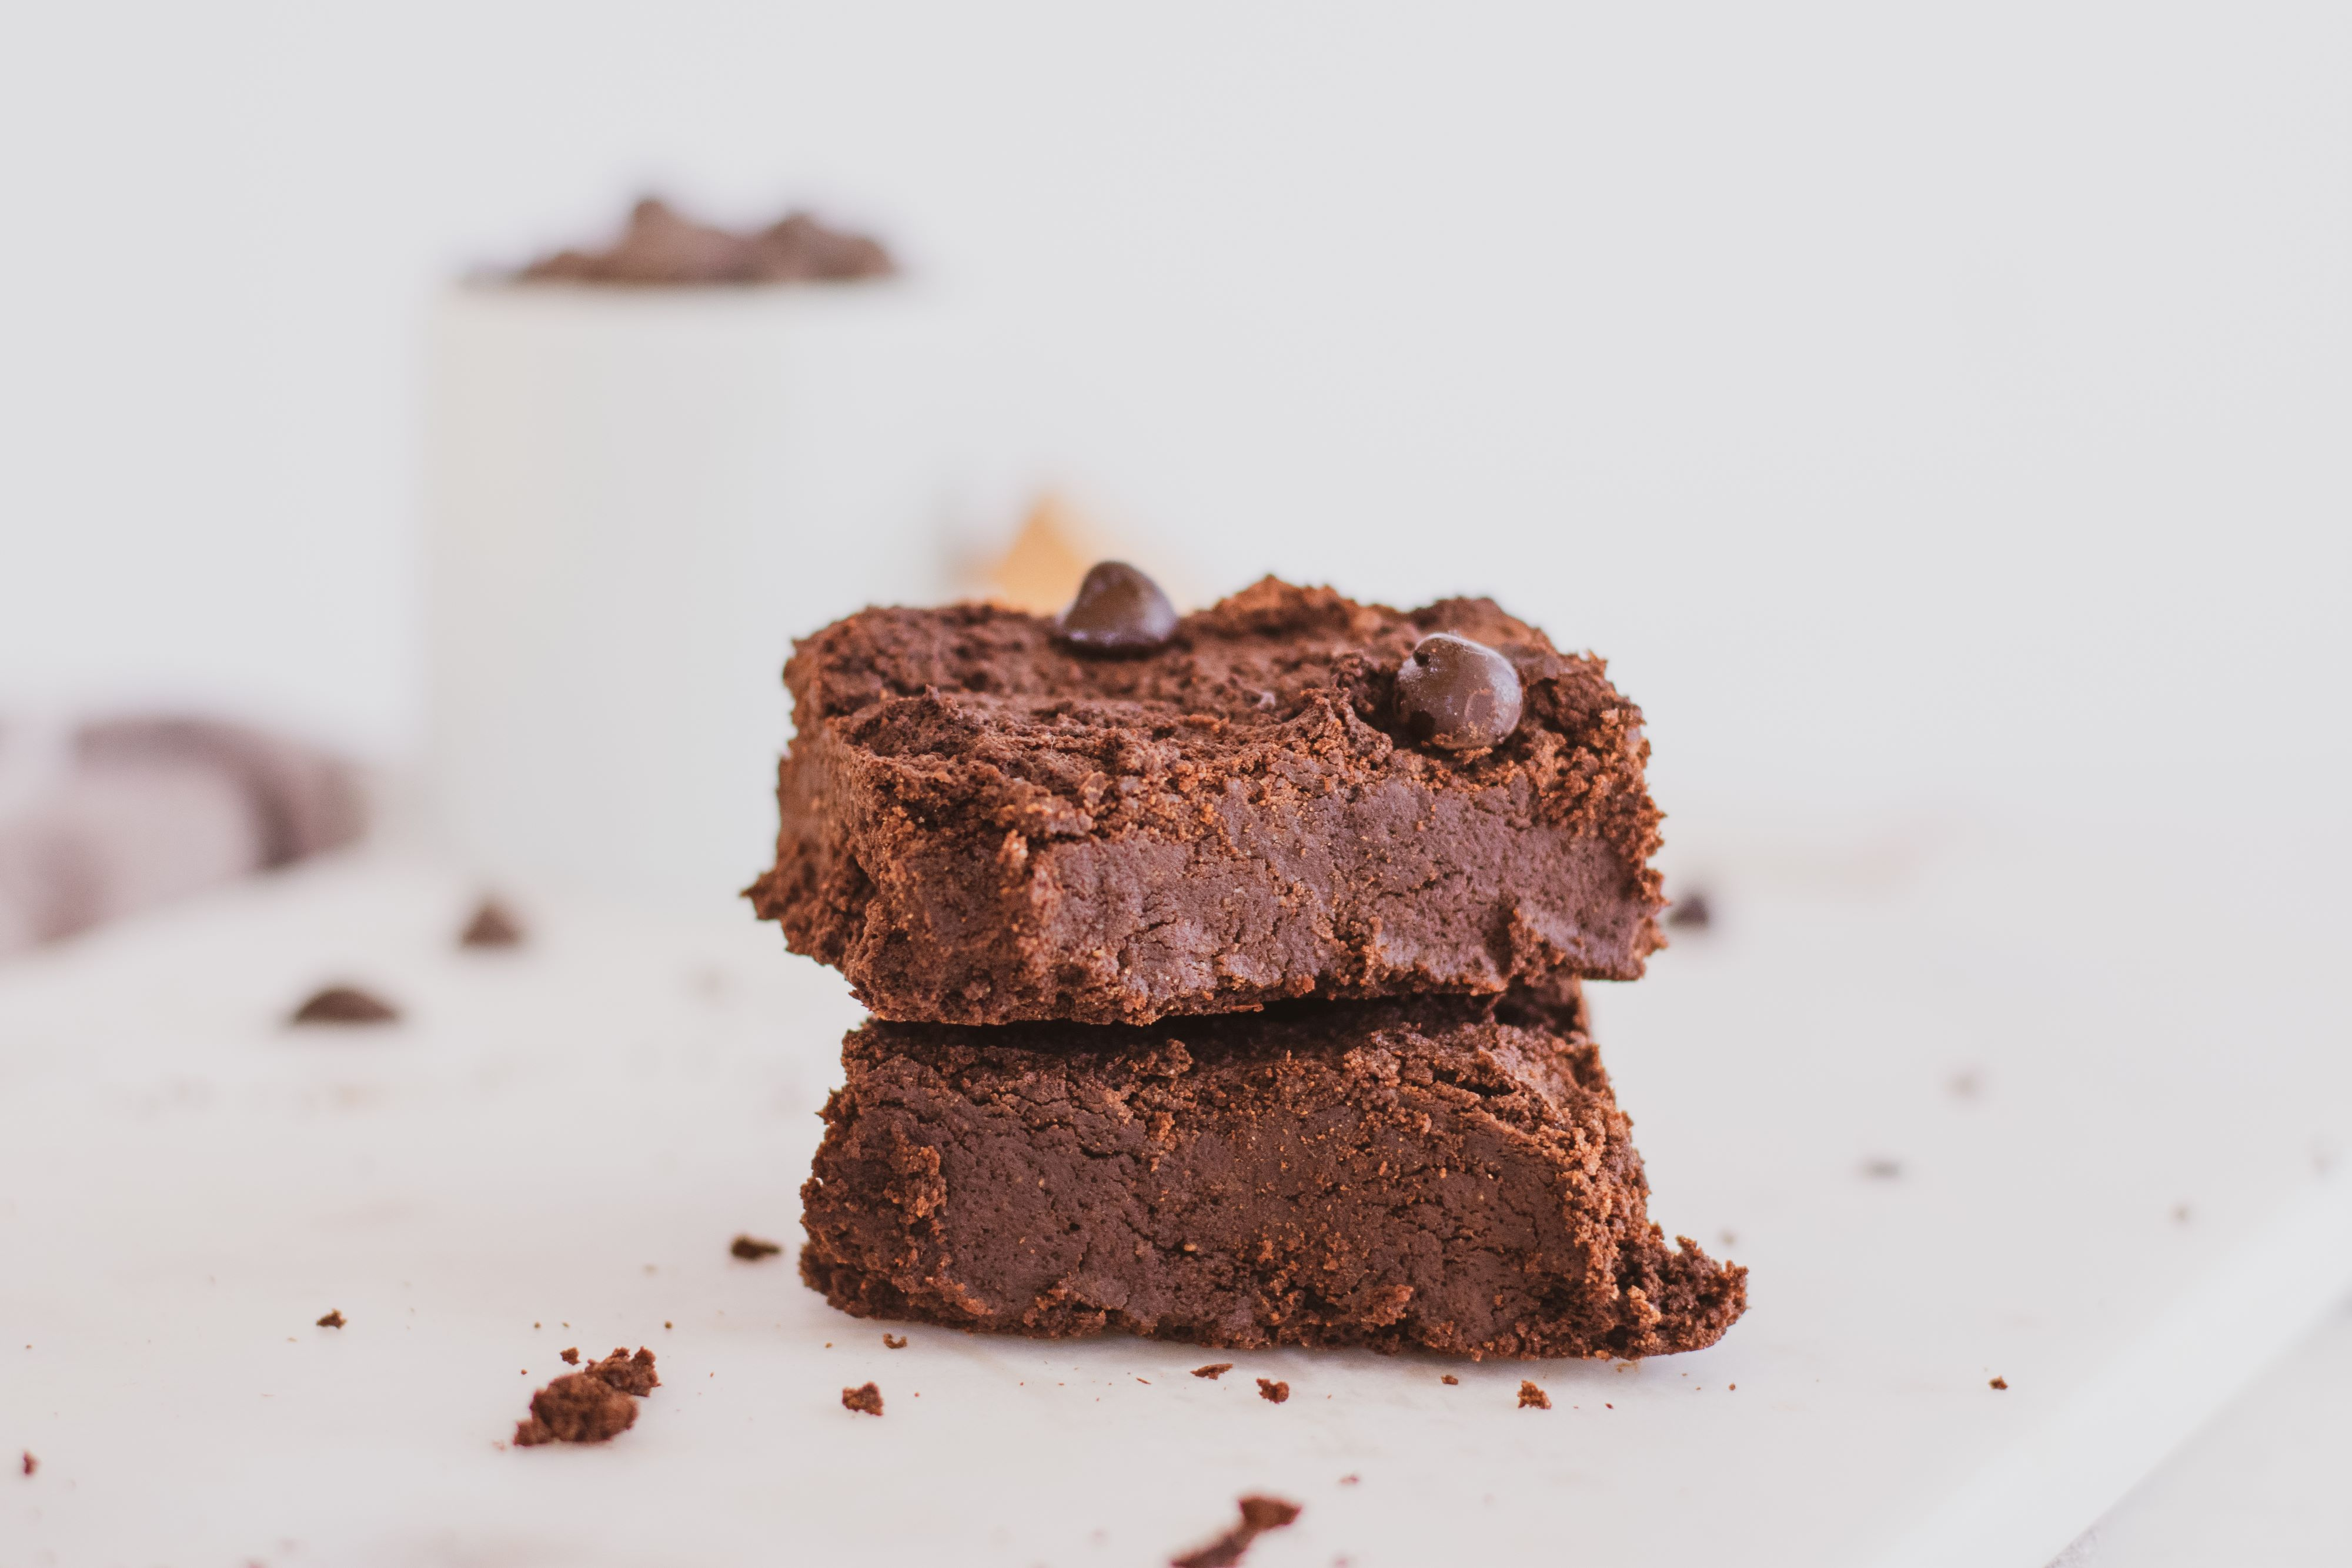 Keto Avocado Brownies with chocolate chips on top. Set on a white surface.